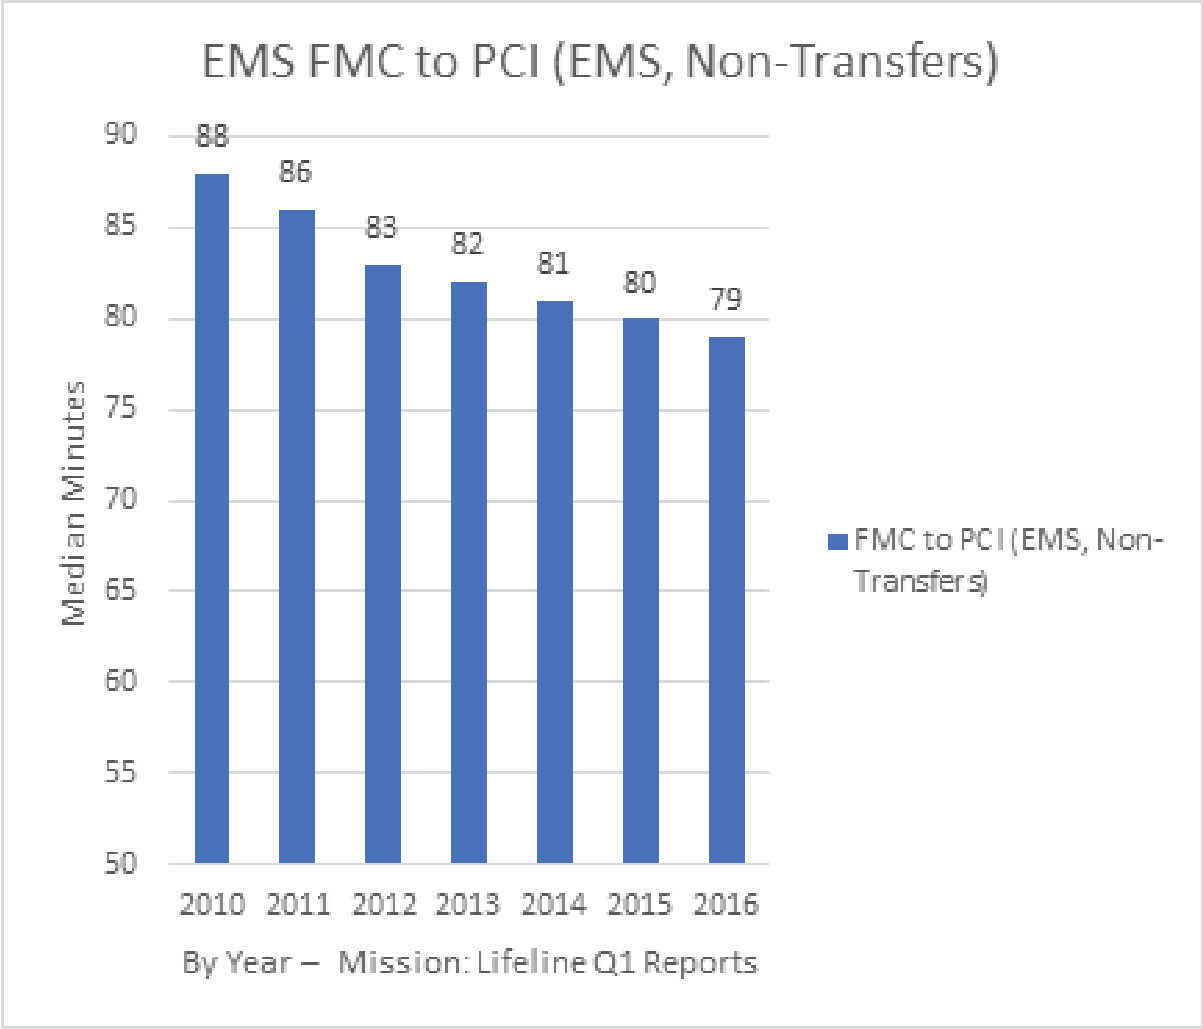 EMS FMC to PCI